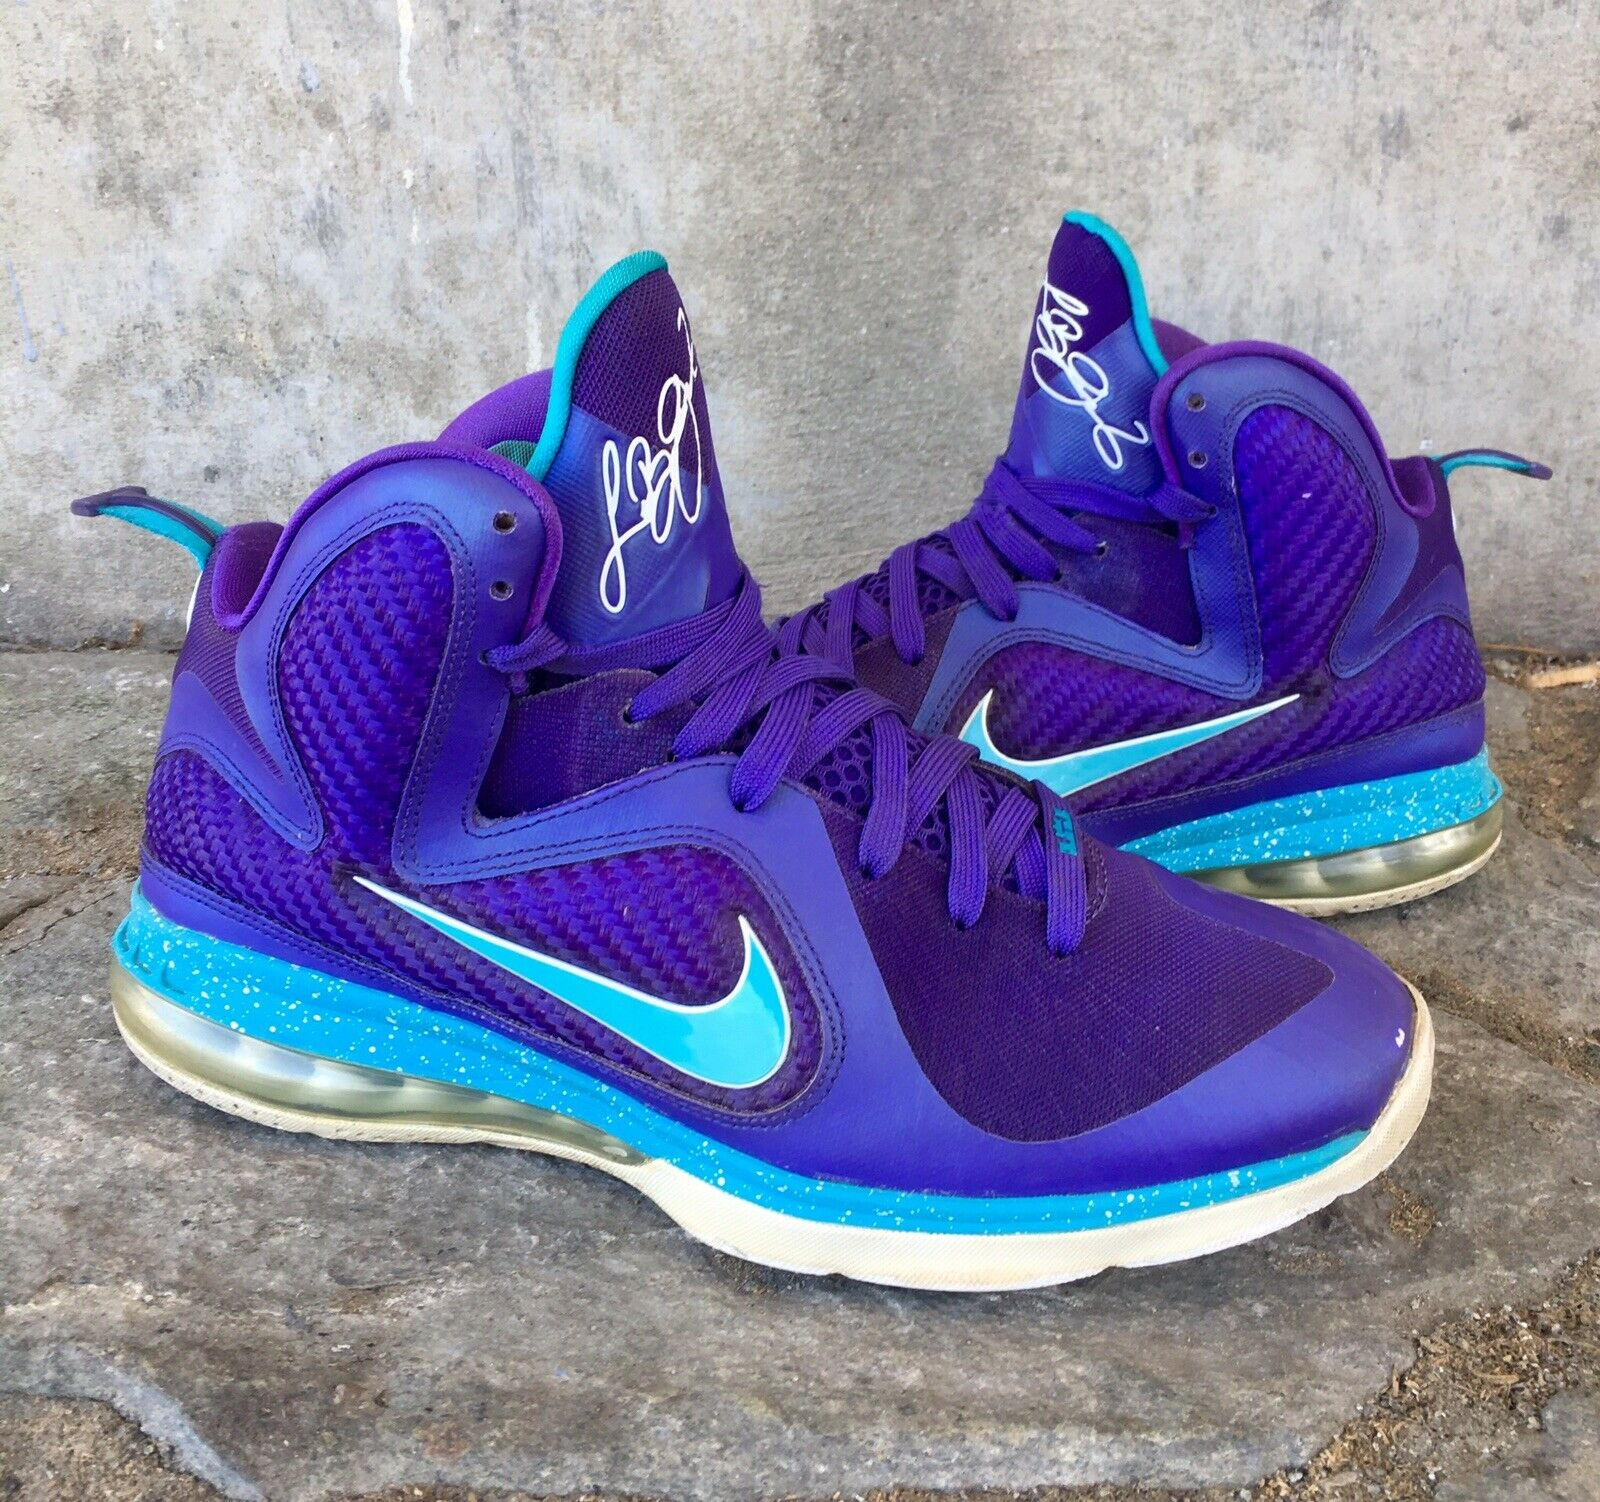 Nike Air Max Lebron 9 IX Hornets Size 10 Men's Basketball shoes Purple bluee 2012